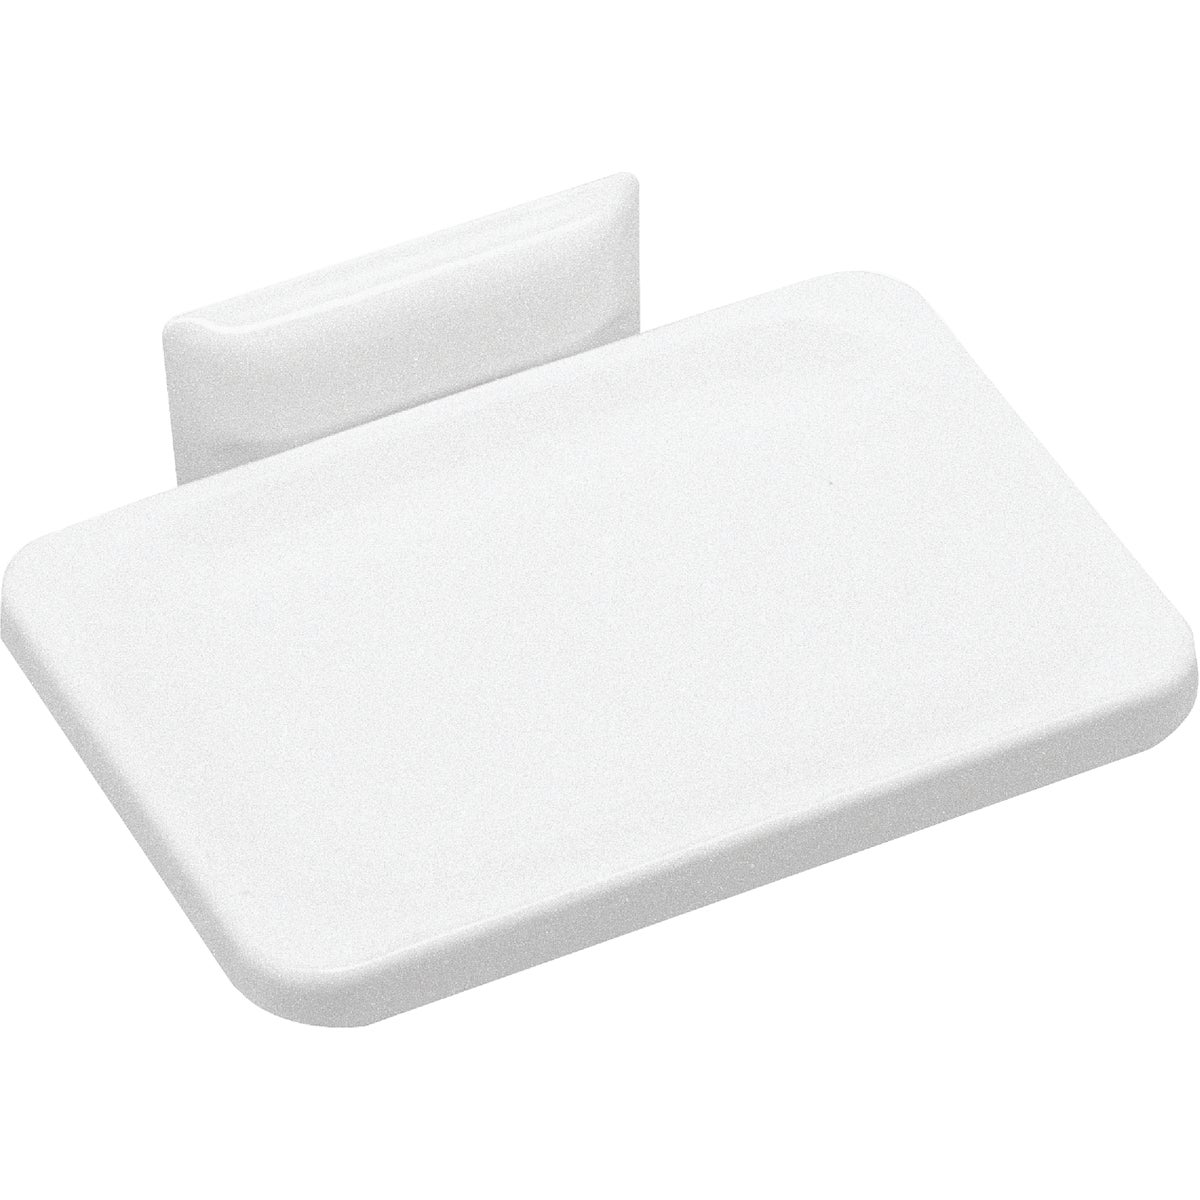 WHT WALL MOUNT SOAP DISH - 48000 by Decko Bath